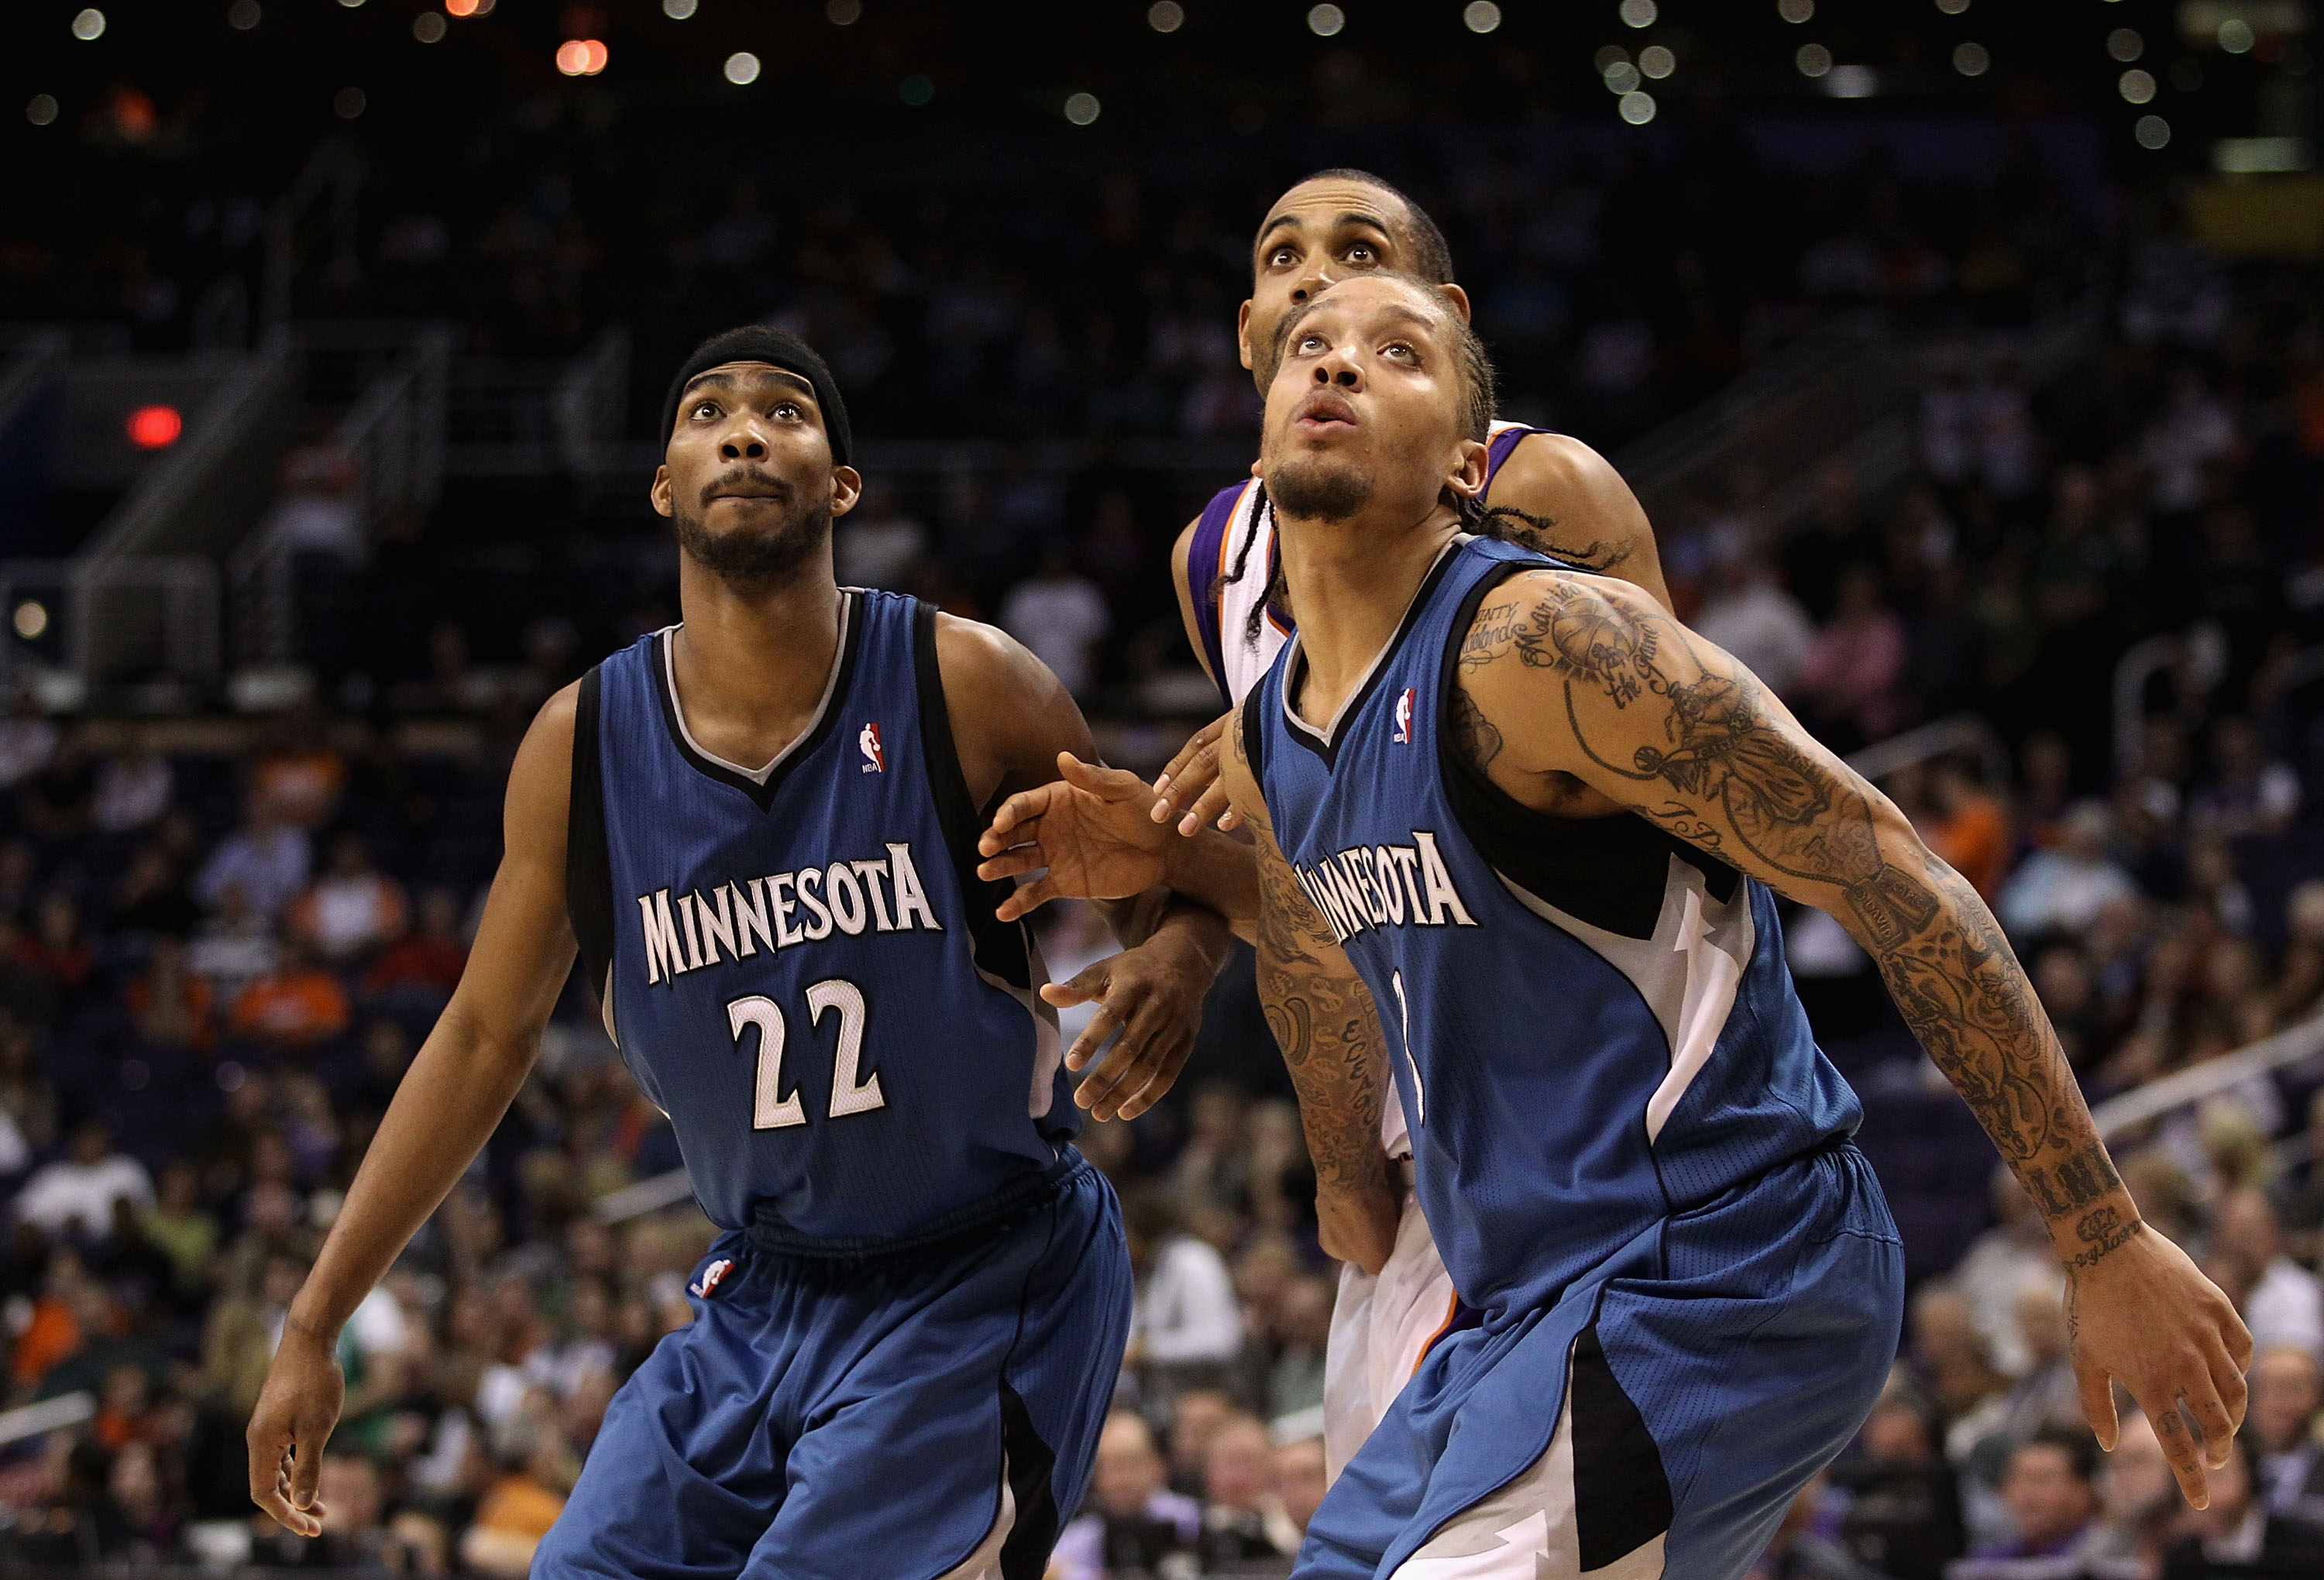 PHOENIX - DECEMBER 15:  Corey Brewer #22 and Michael Beasley #22 of the Minnesota Timberwolves block out Grant Hill #33 of the Phoenix Suns during the NBA game at US Airways Center on December 15, 2010 in Phoenix, Arizona.  The Suns defeated the Timberwol